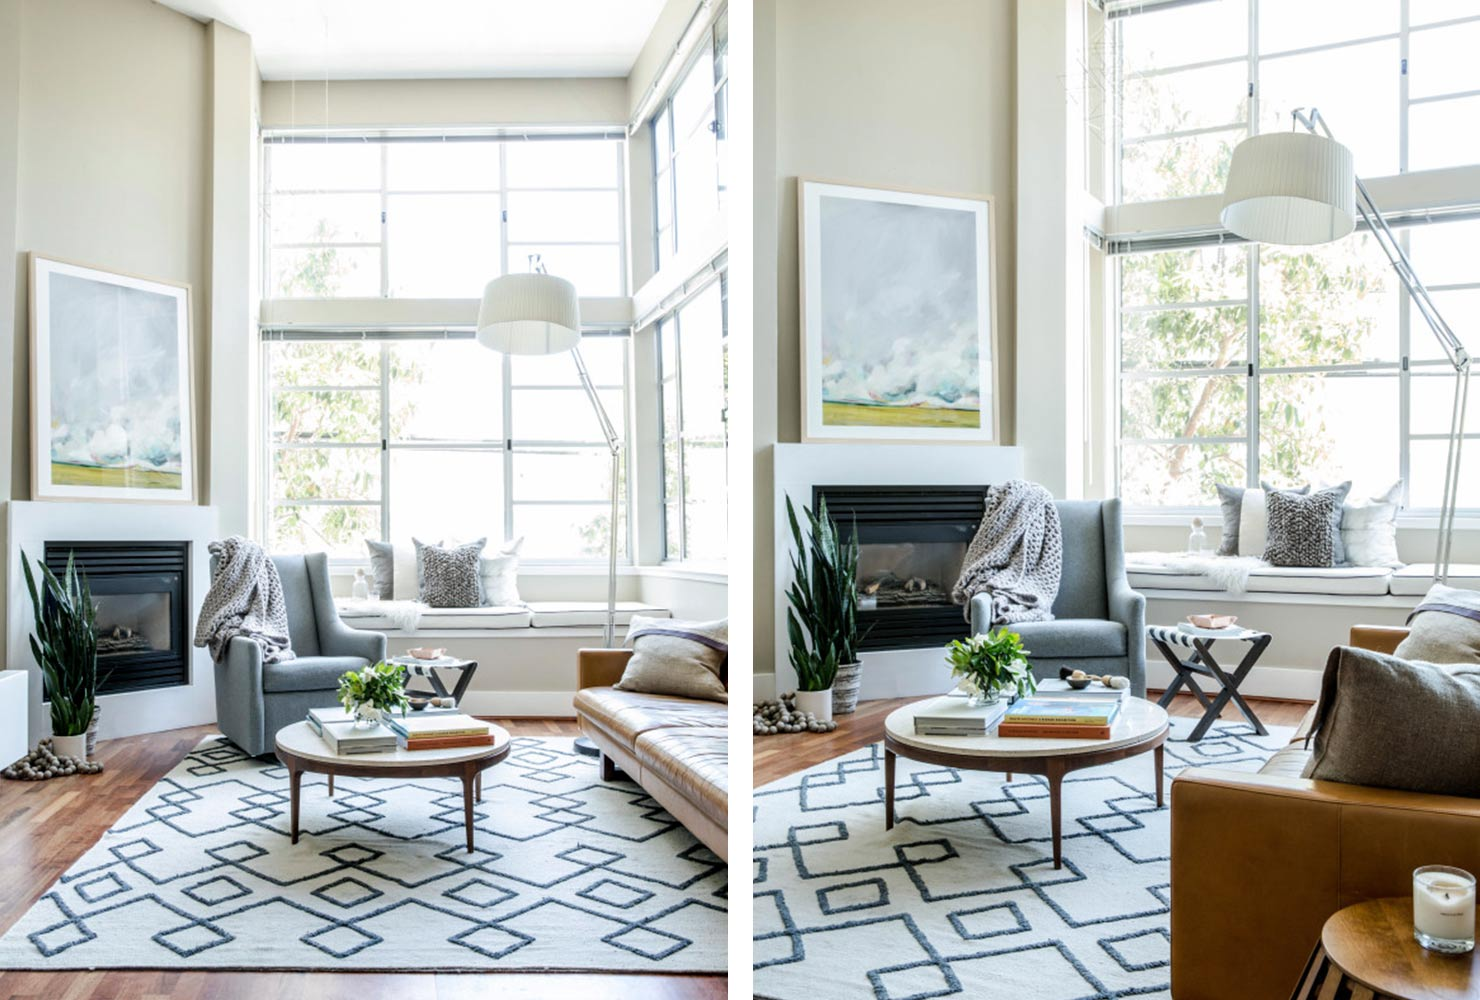 21 Ways To Decorate A Small Living Room And Create Space on Small Space Small Living Room With Fireplace  id=75460